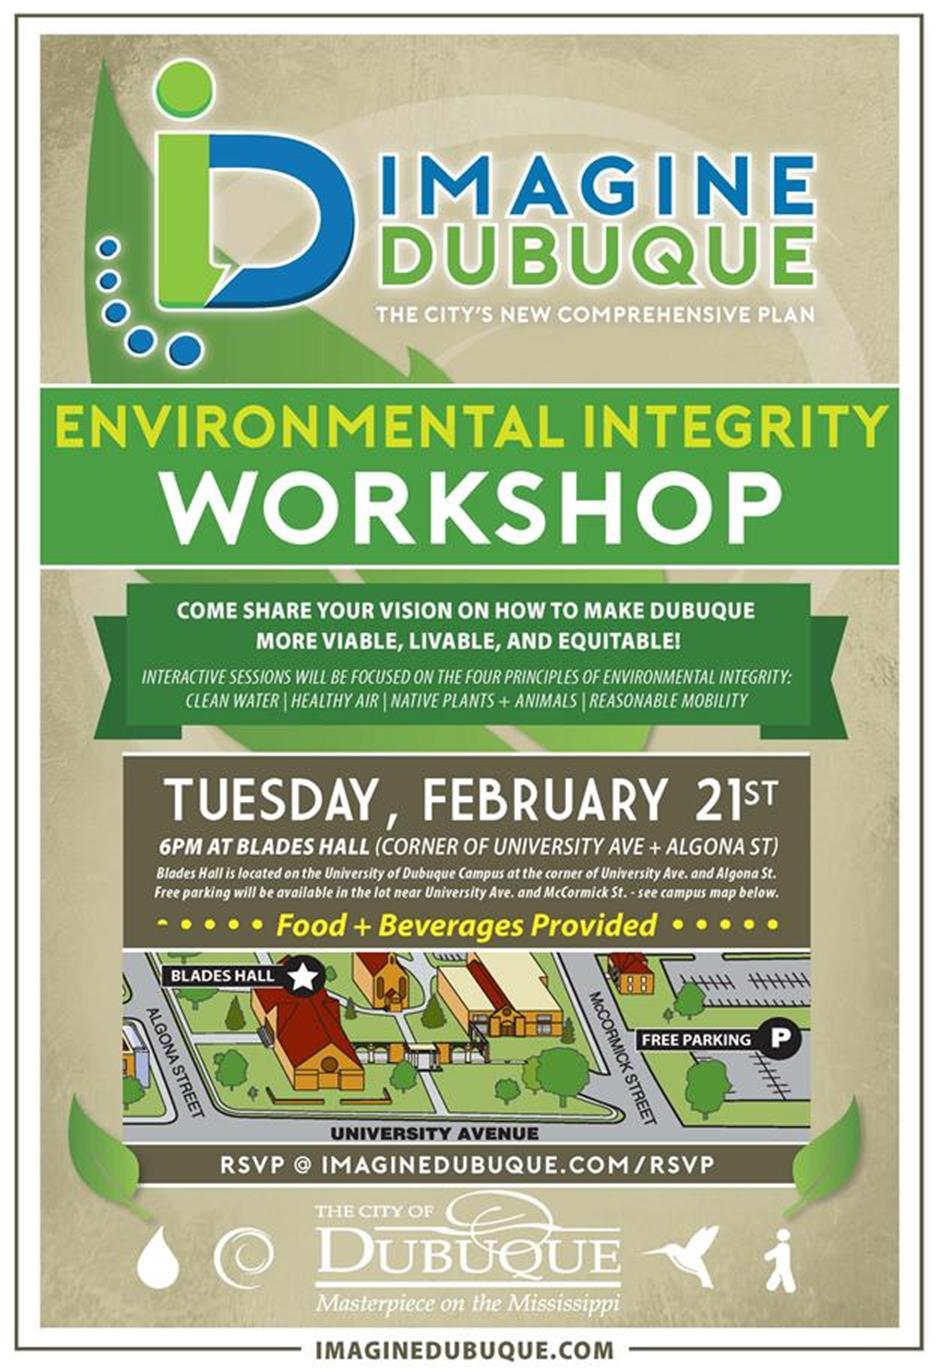 ecological integrity workshop flyer